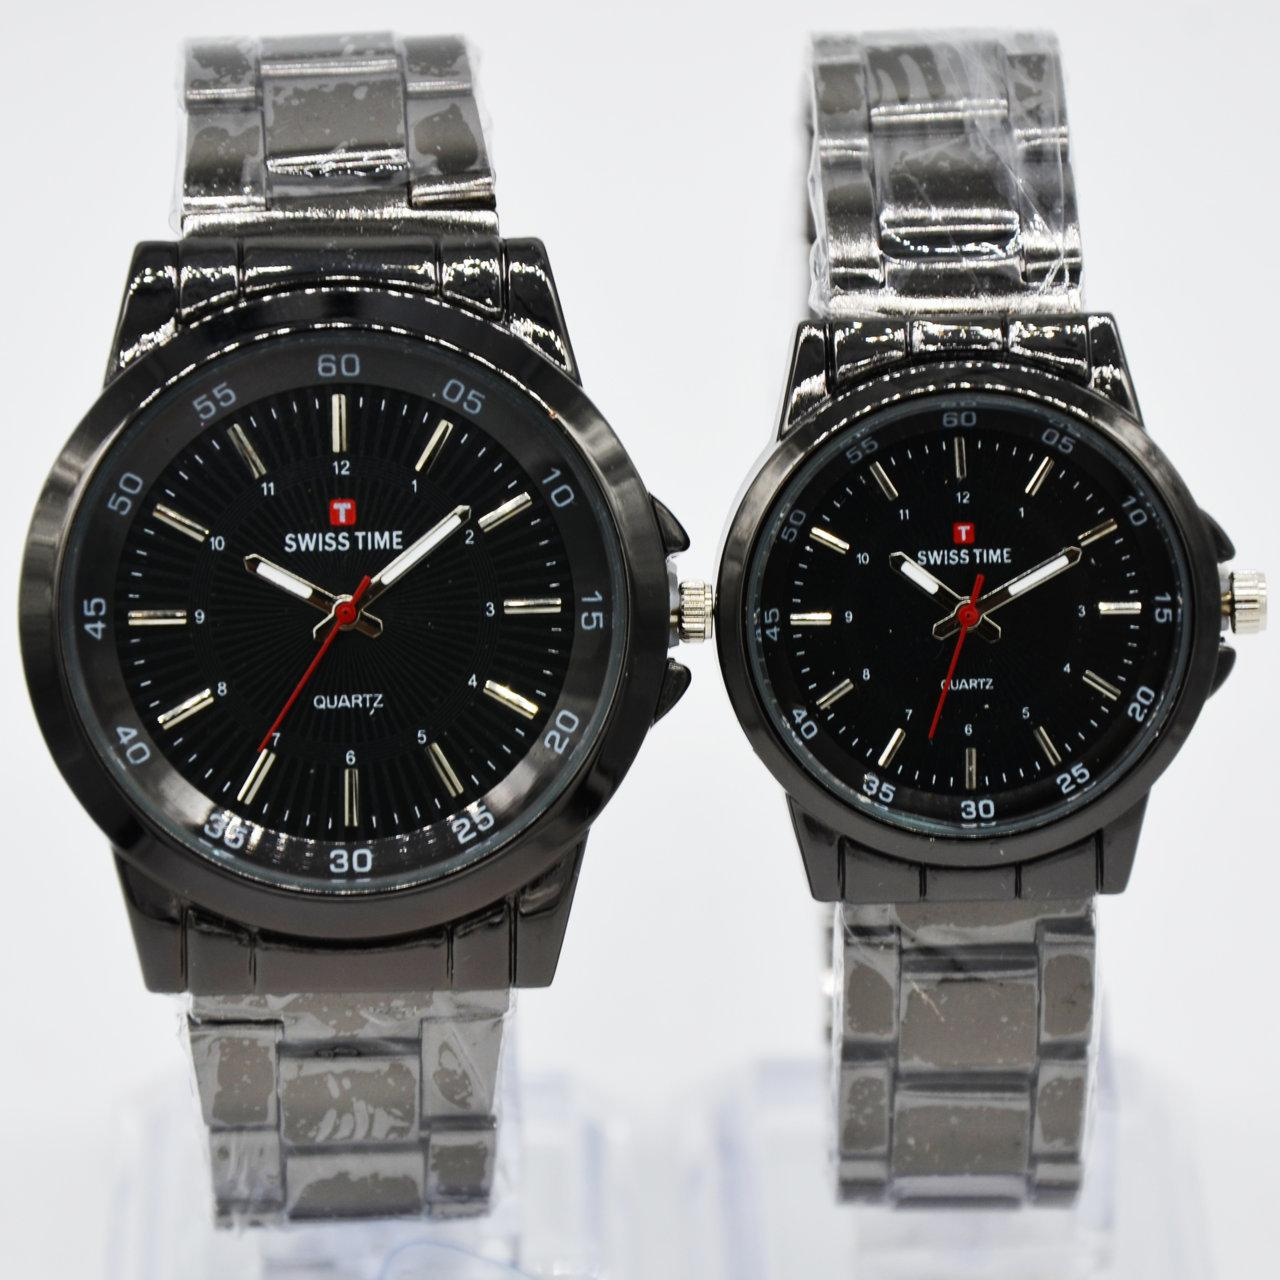 Swiss Army/Time Jam tangan Pria&Wanita (Couple) - S121249